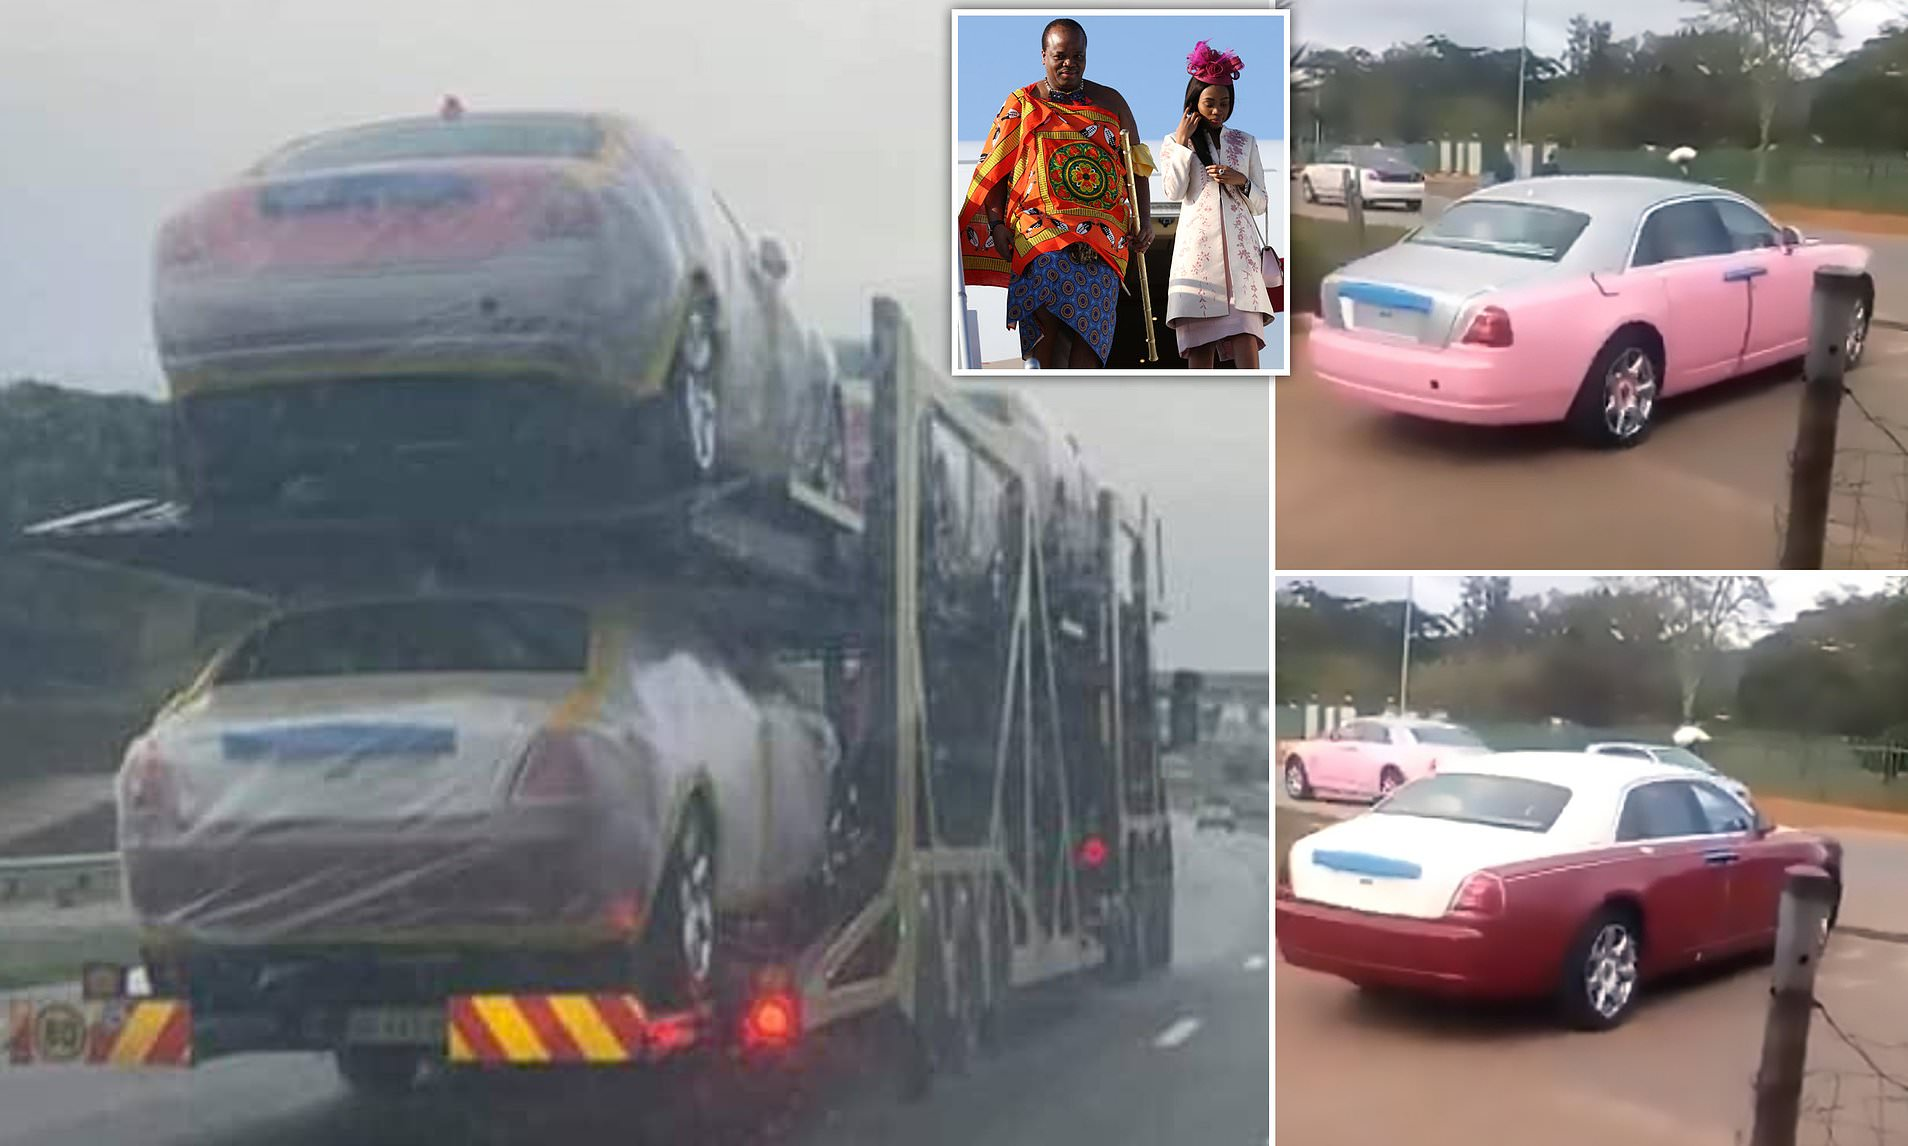 It doesn't matter who you are or where you stand in the society – a tow truck hauling 19 Roll-Royces at once is a rare sight, however you look at it. All the more so if you consider that all cars belong to the same man.